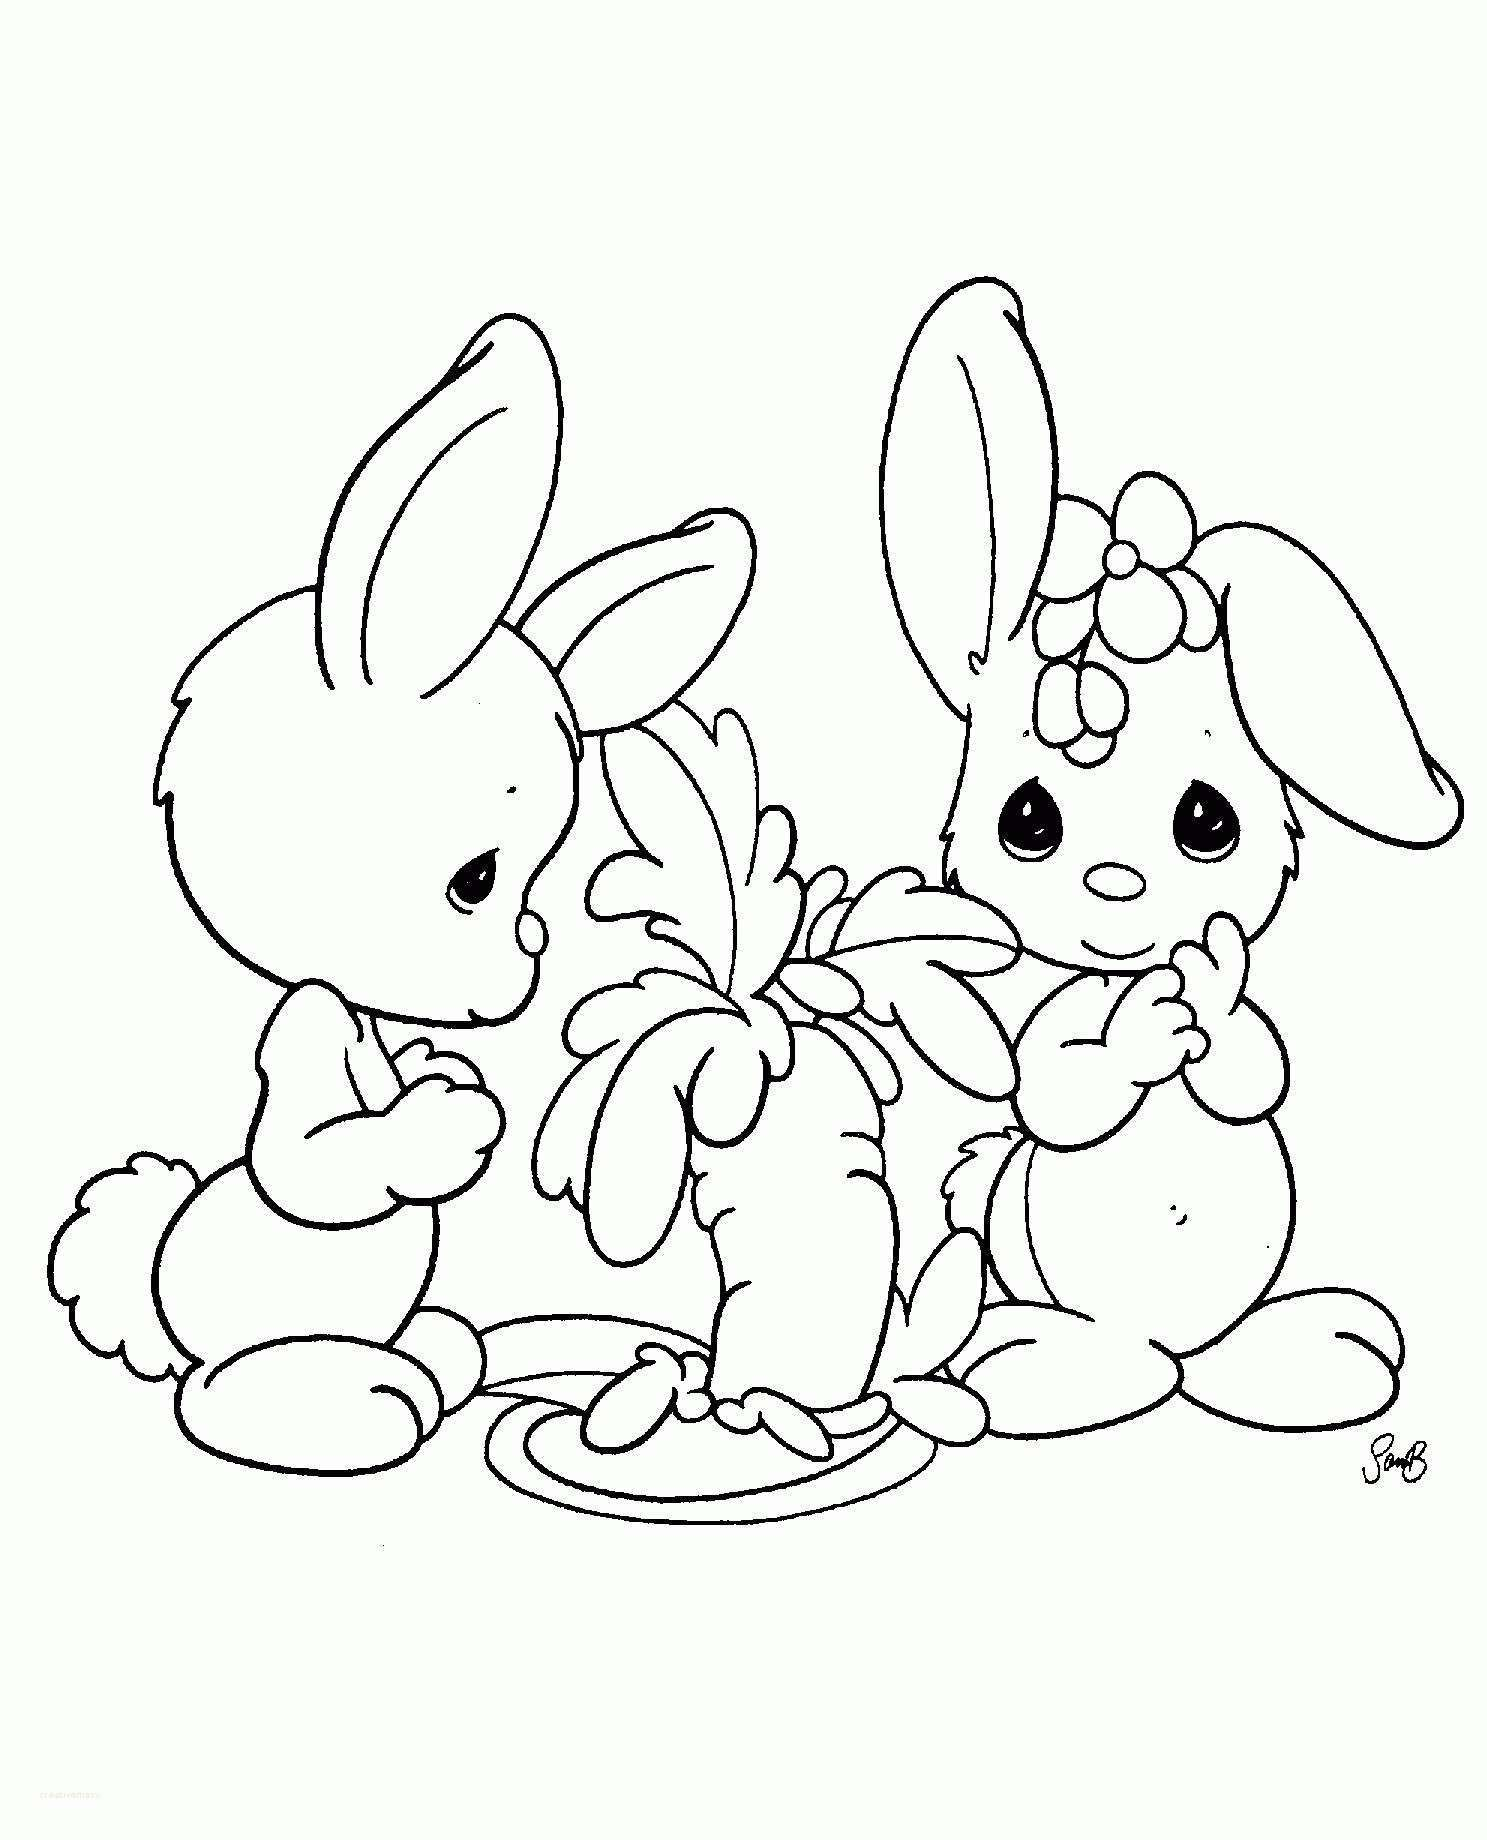 Exciting Coloring Pages Bunnies Precious Moments Coloring Pages Bunny Coloring Pages Love Coloring Pages